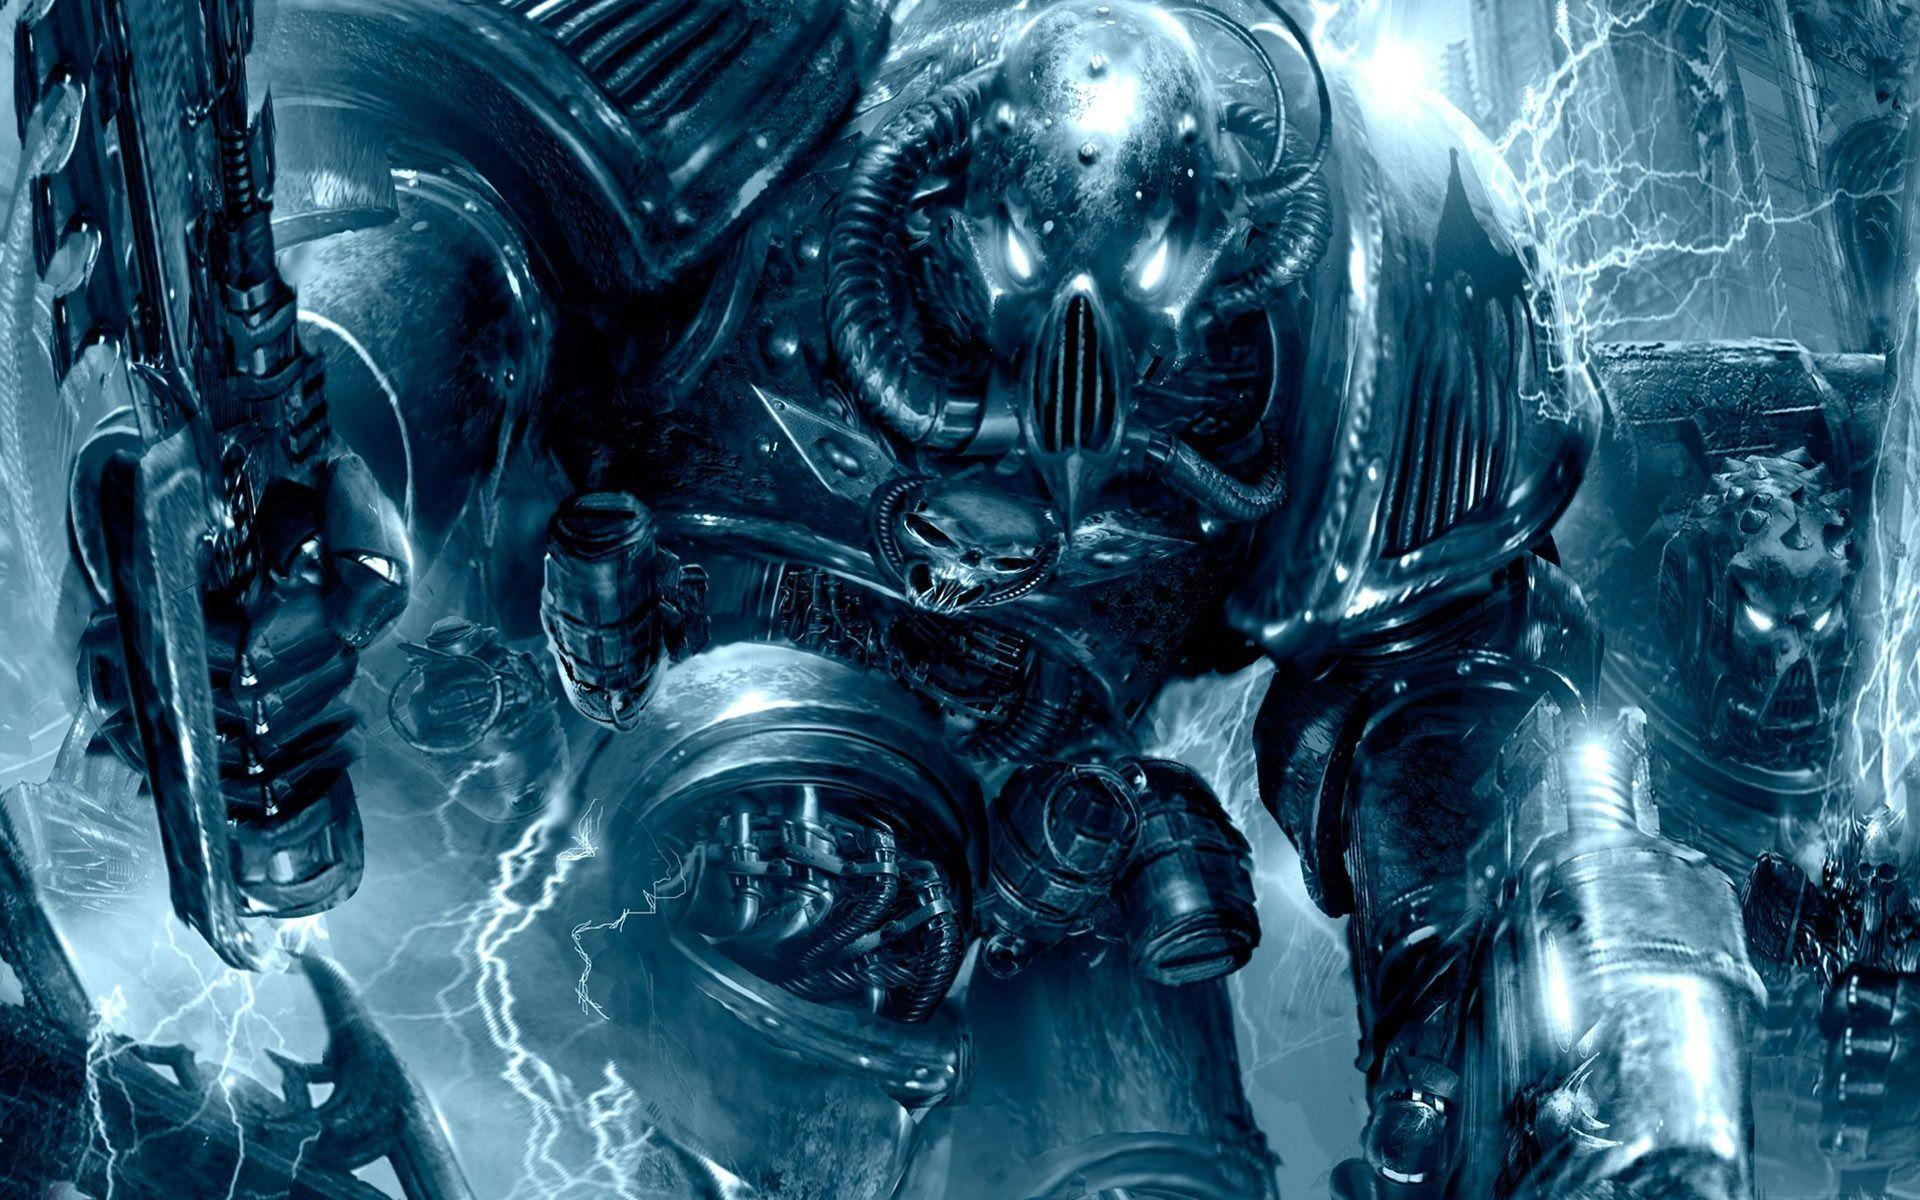 Warhammer 40k Wallpapers - Wallpaper Cave